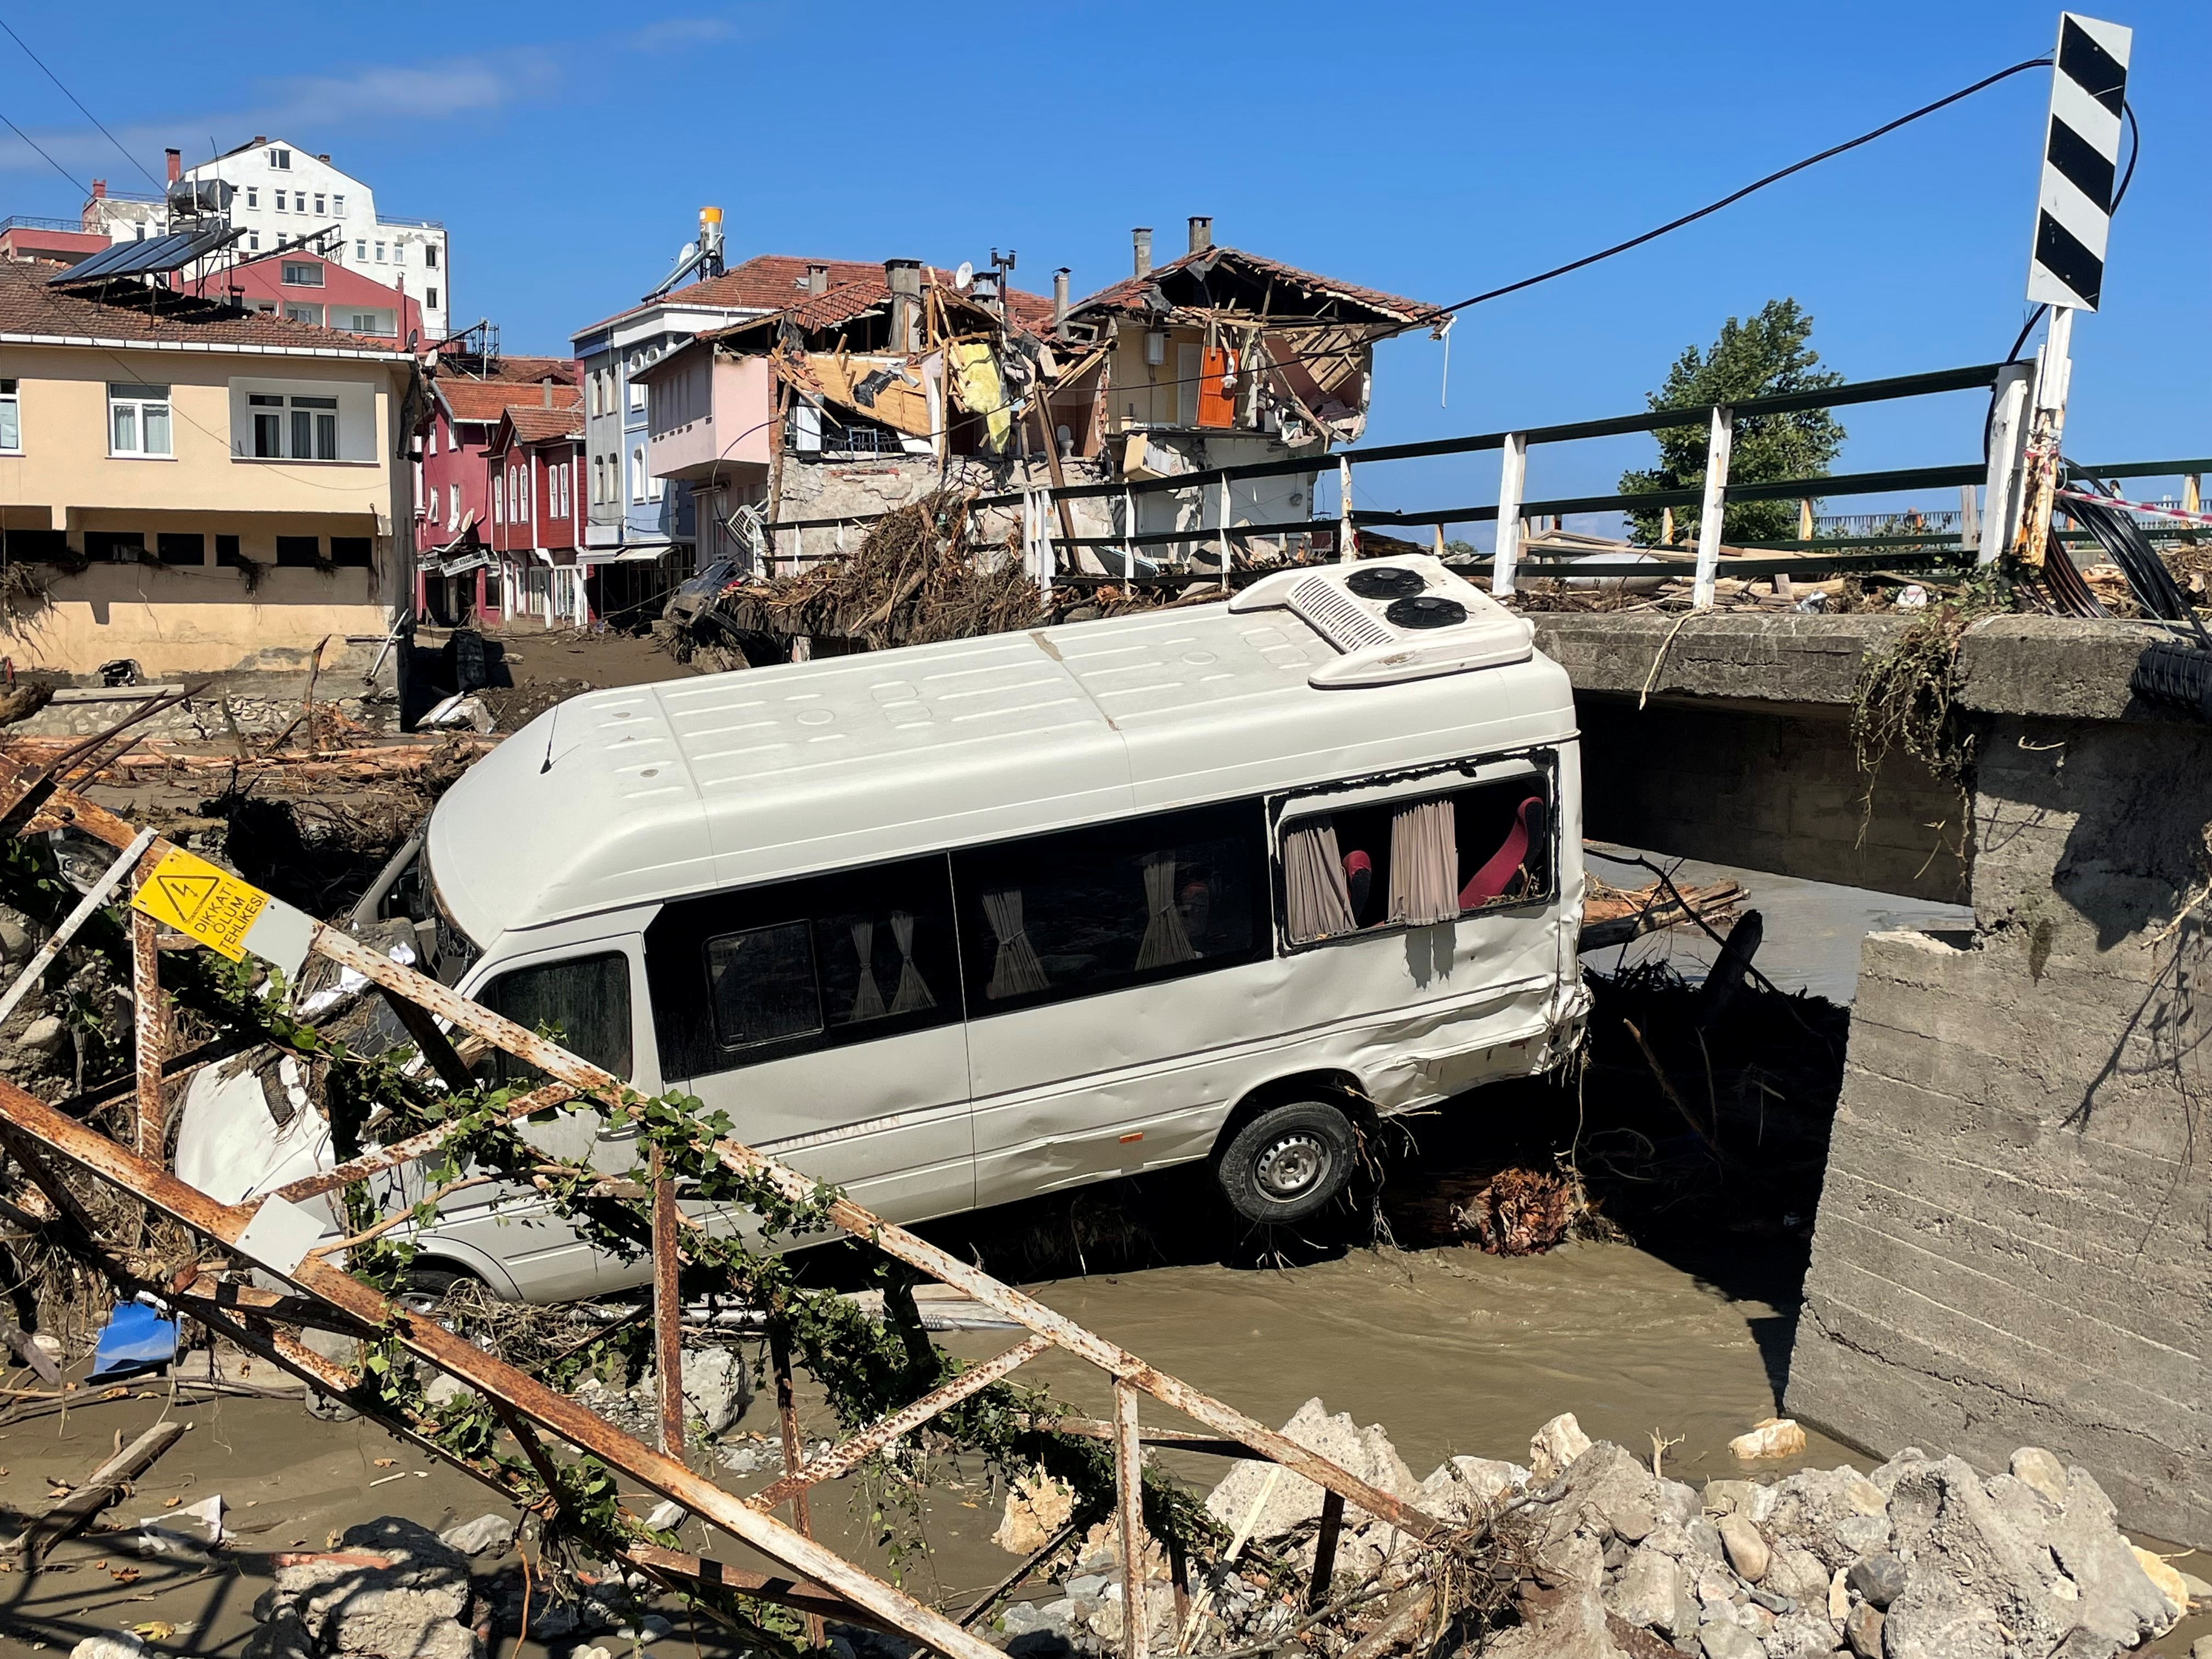 A damaged vehicle and a partially collapsed building are seen following the flash floods that swept through towns in the Turkish Black Sea region, in the town of Ilisi, in Kastamonu province, Turkey, August 15, 2021. REUTERS/Mehmet Emin Caliskan     TPX IMAGES OF THE DAY